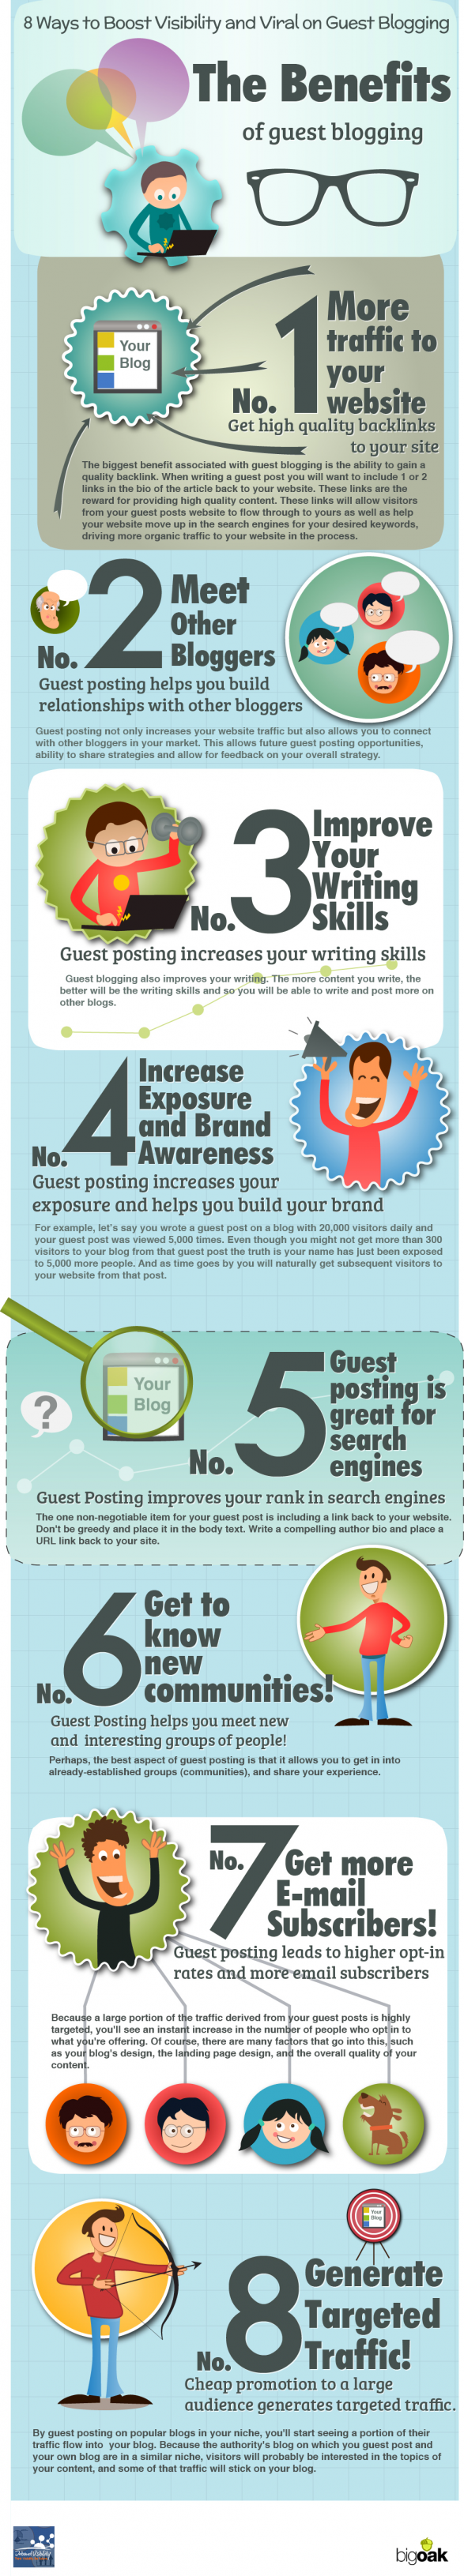 Guest Blogging: 8 Ways to Boost Brand Awareness & Discover New Trend increase brand awareness